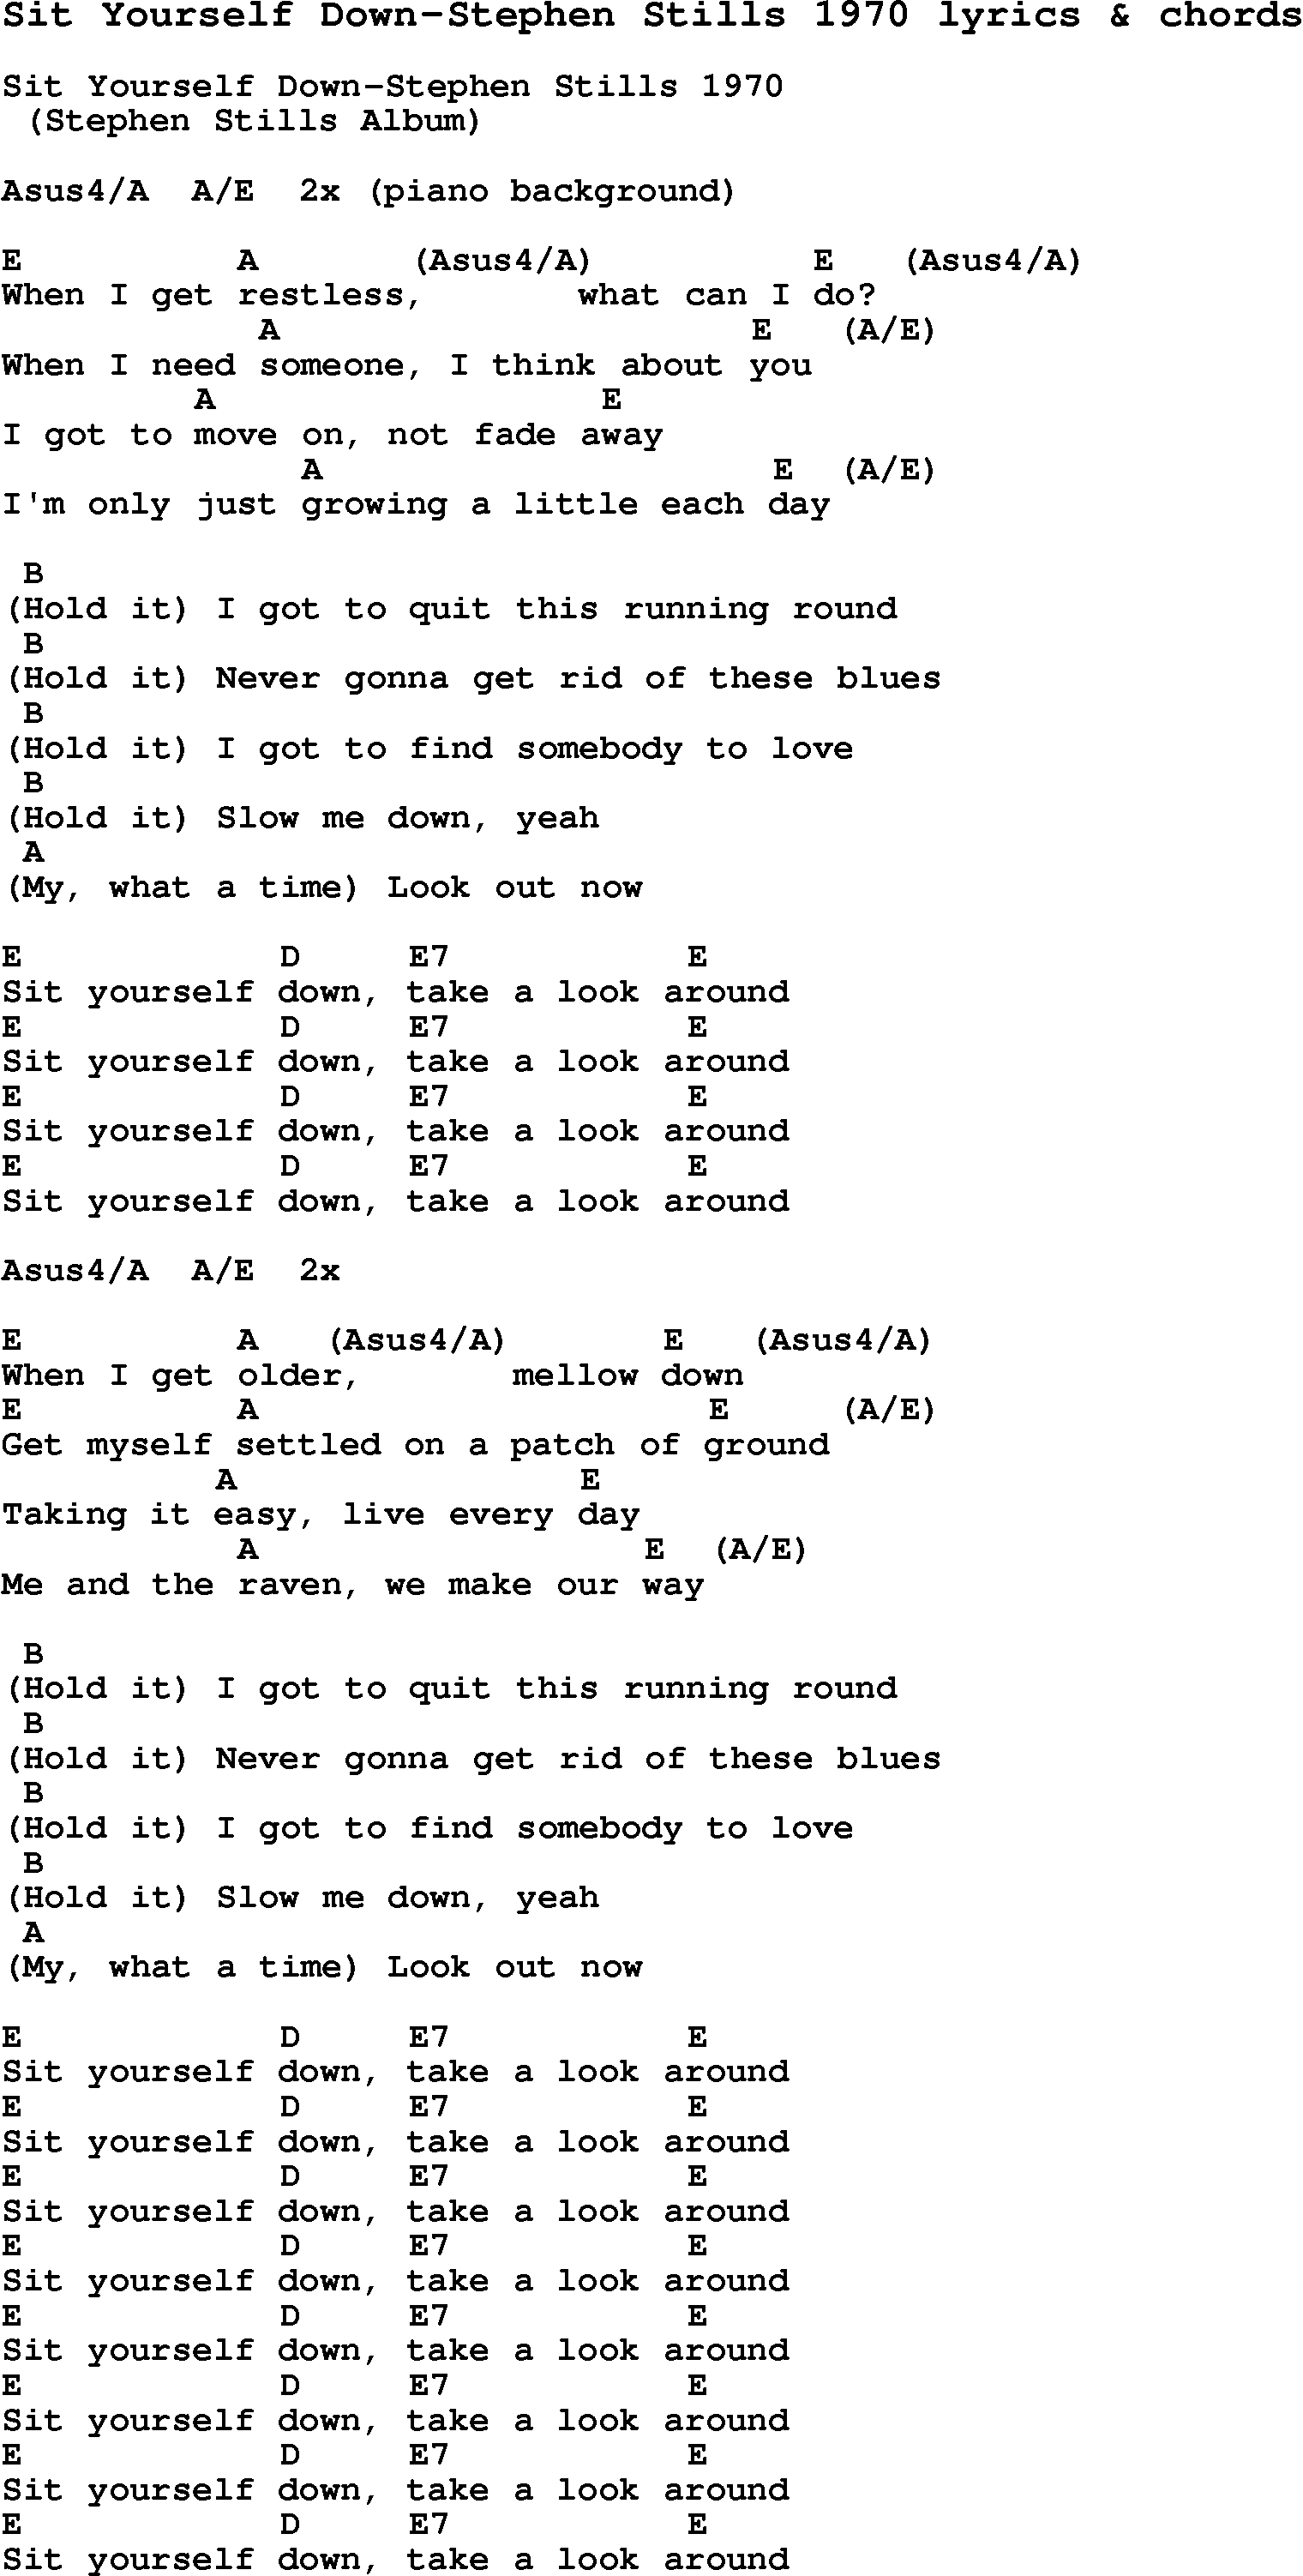 Love song lyrics forsit yourself down stephen stills 1970 with love song lyrics for sit yourself down stephen stills 1970 with chords for ukulele hexwebz Choice Image